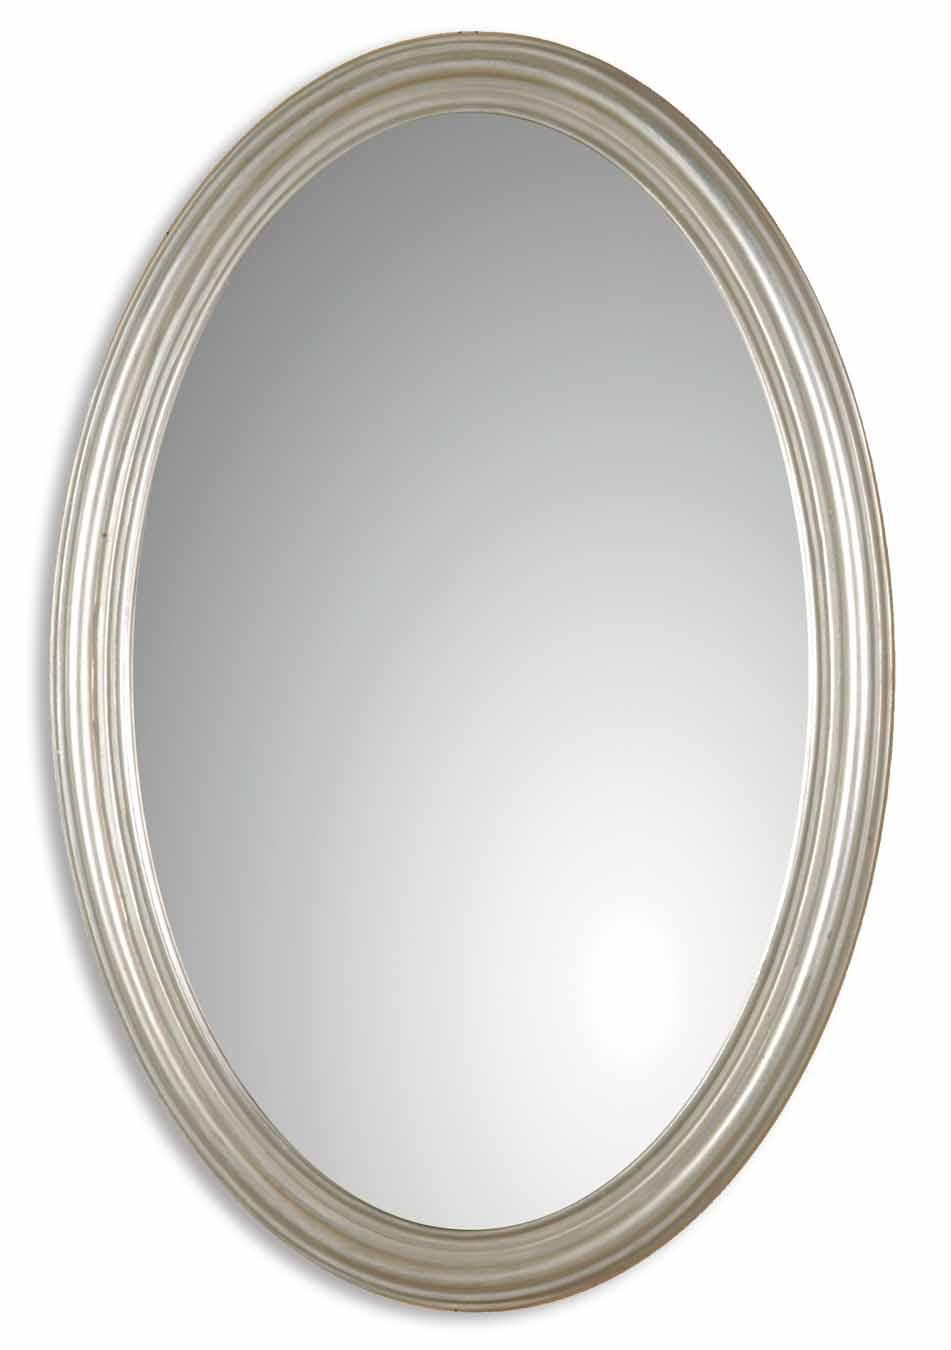 Featured Image of Oval Silver Mirror